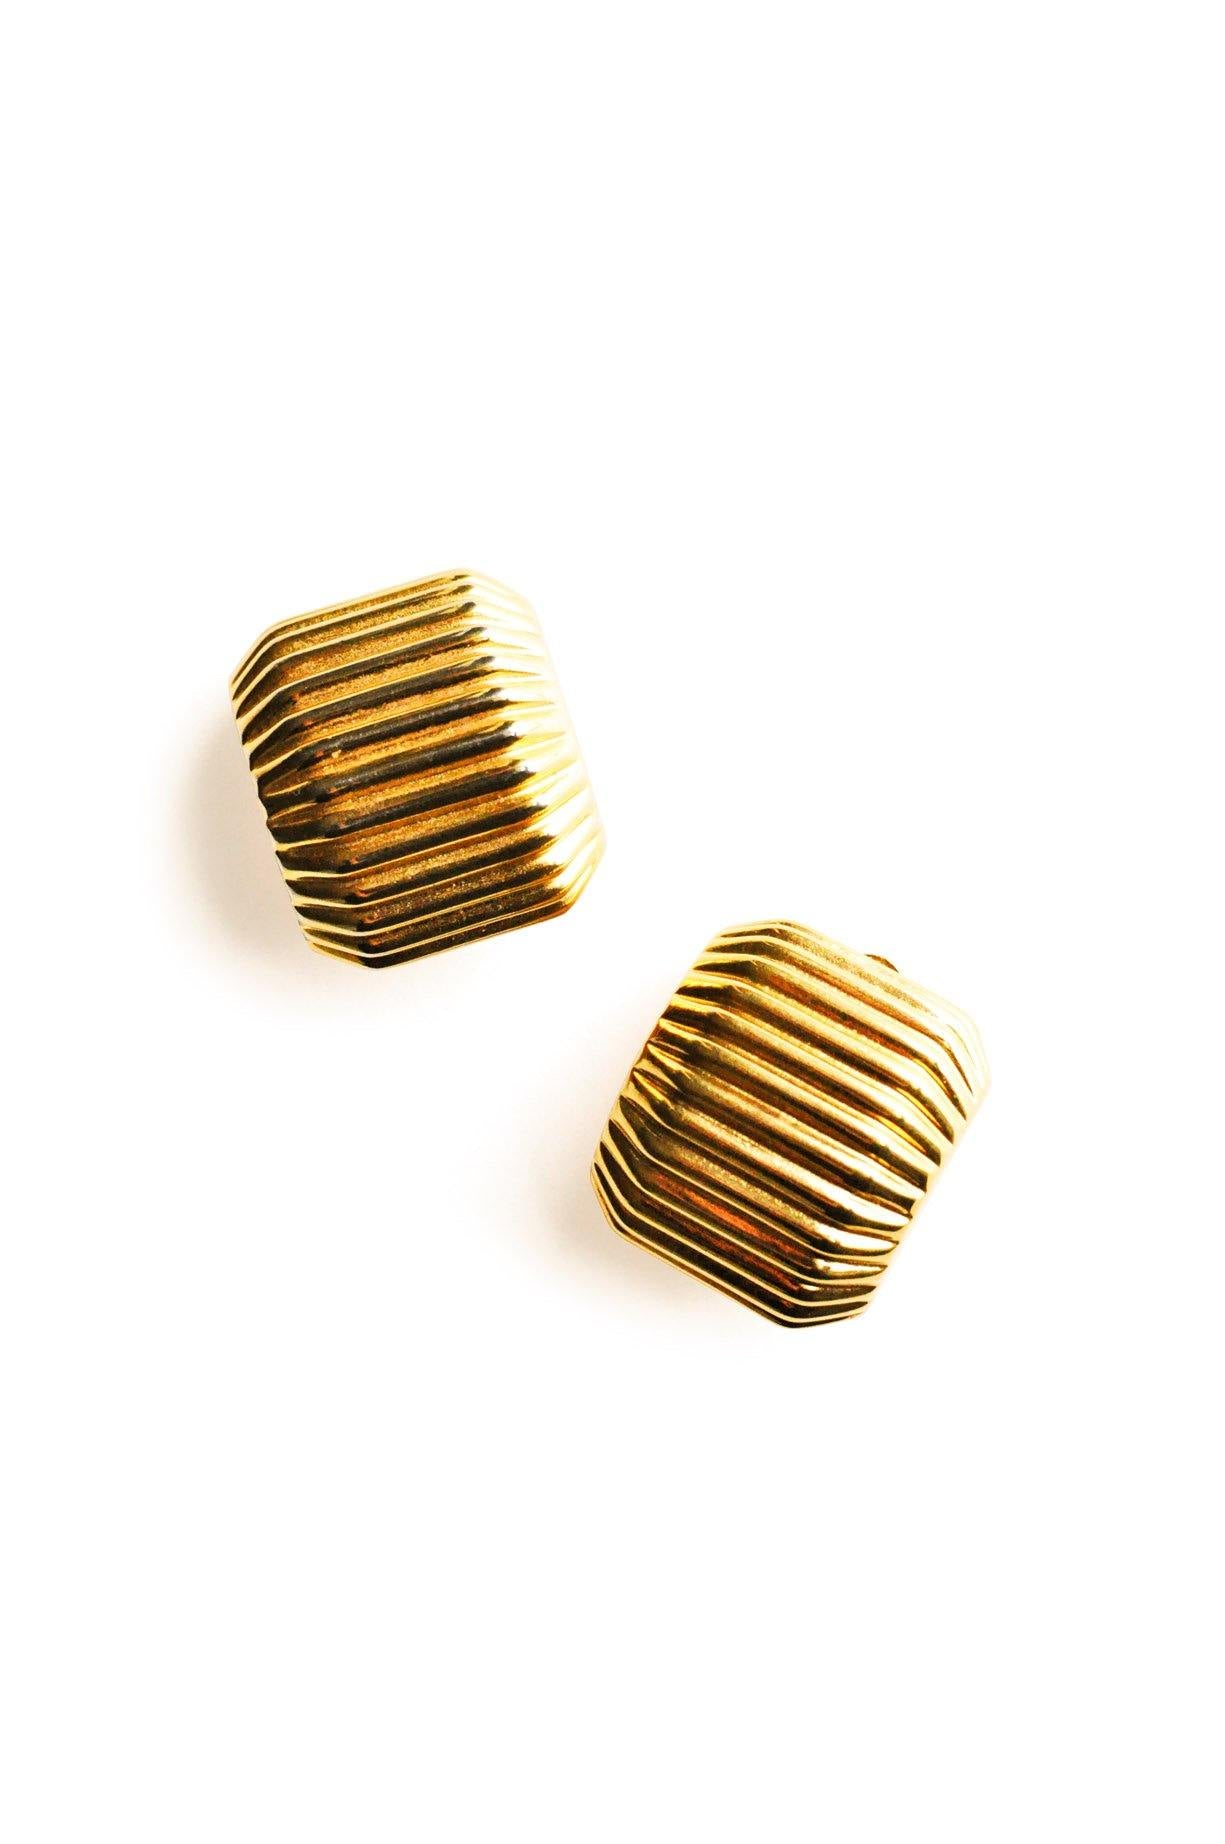 Ribbed Clip-On Earrings From Sweet & Spark